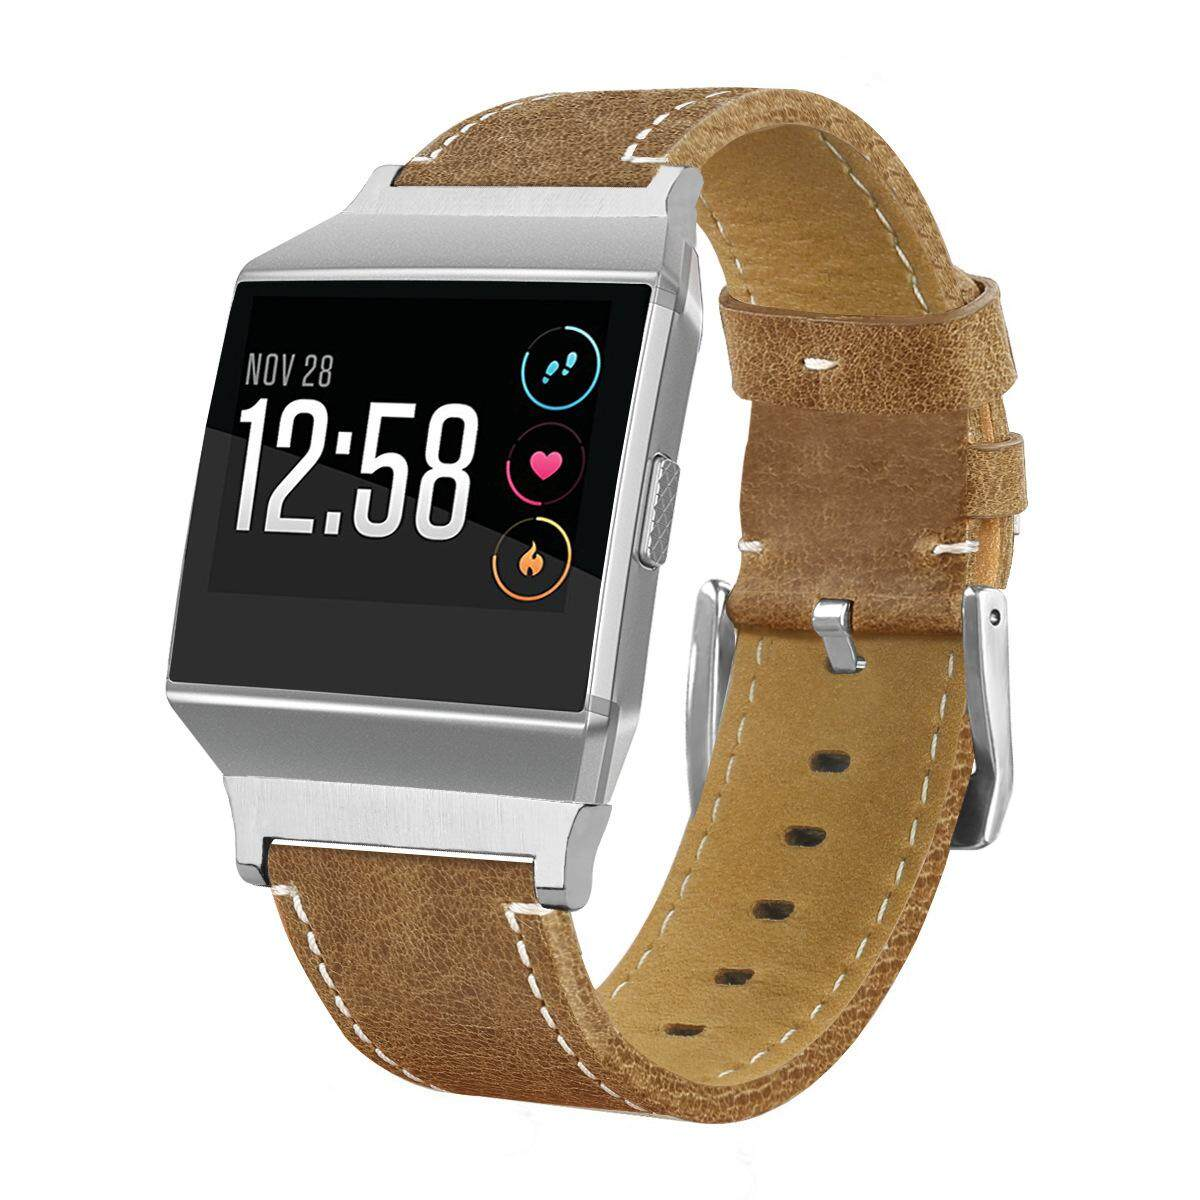 Leather Watch Bands Replacement Wrist Strap for Fitbit ionic Smart watch strips #B-brown Malaysia